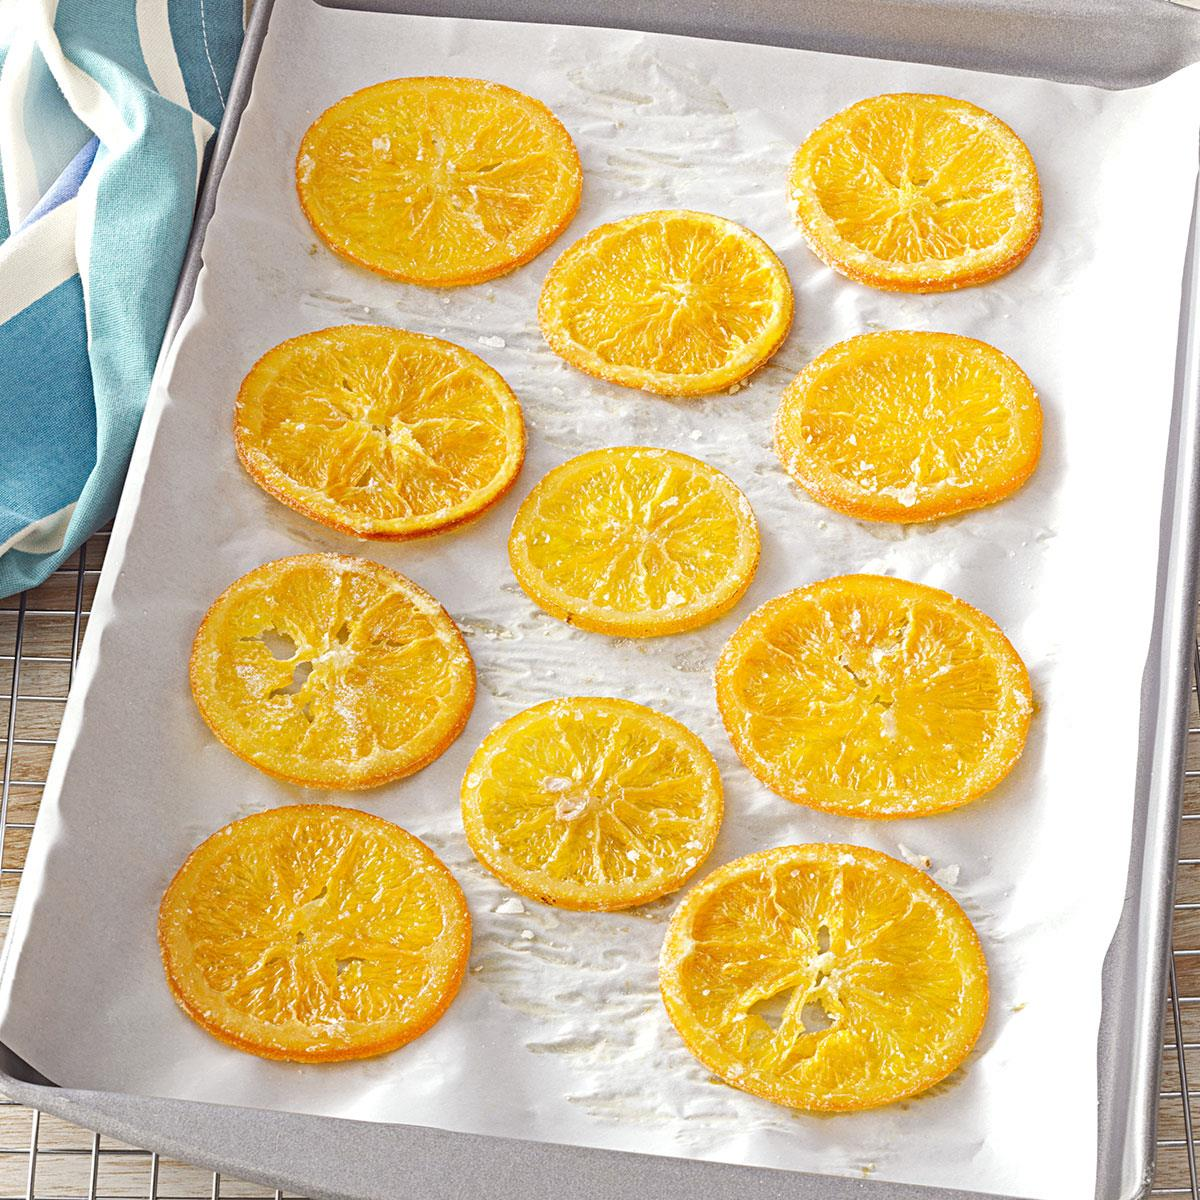 Candied Citrus Recipe Taste Of Home